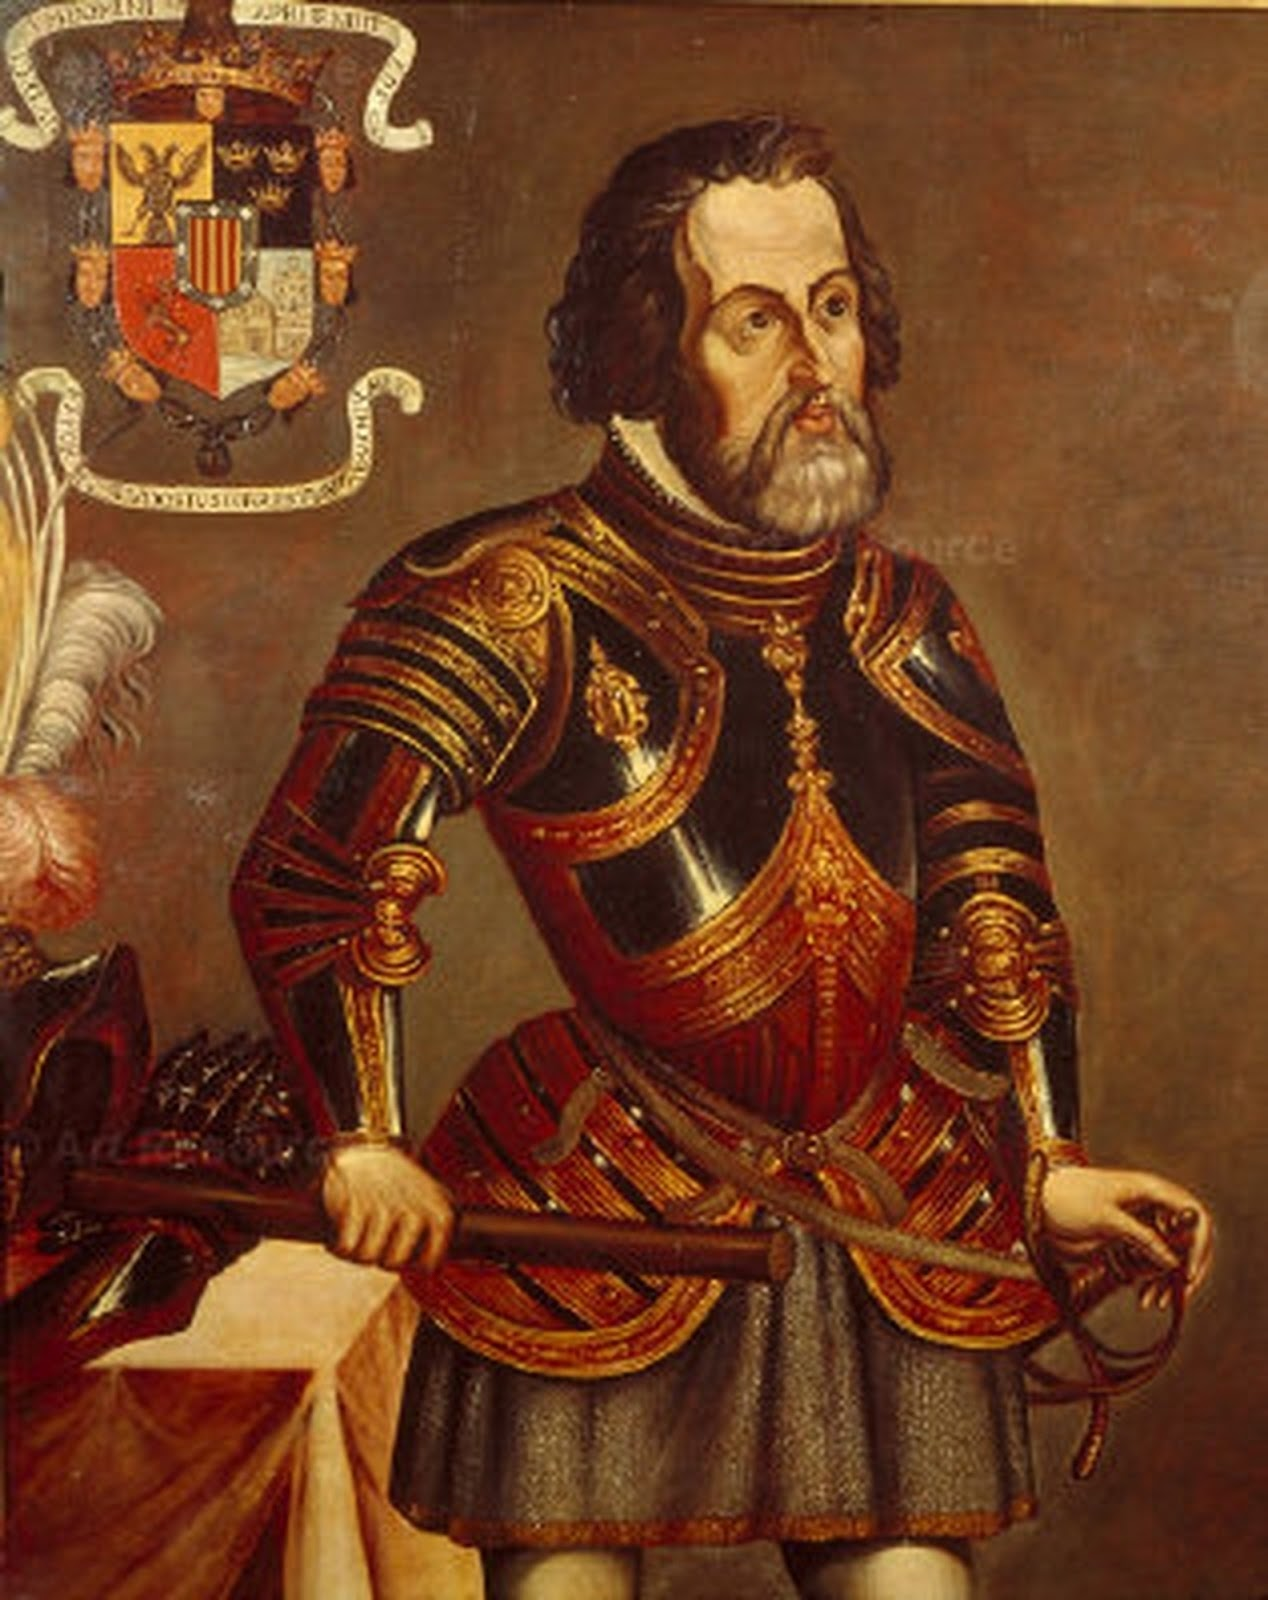 Warfare history blog today in history the night of sadness cortes